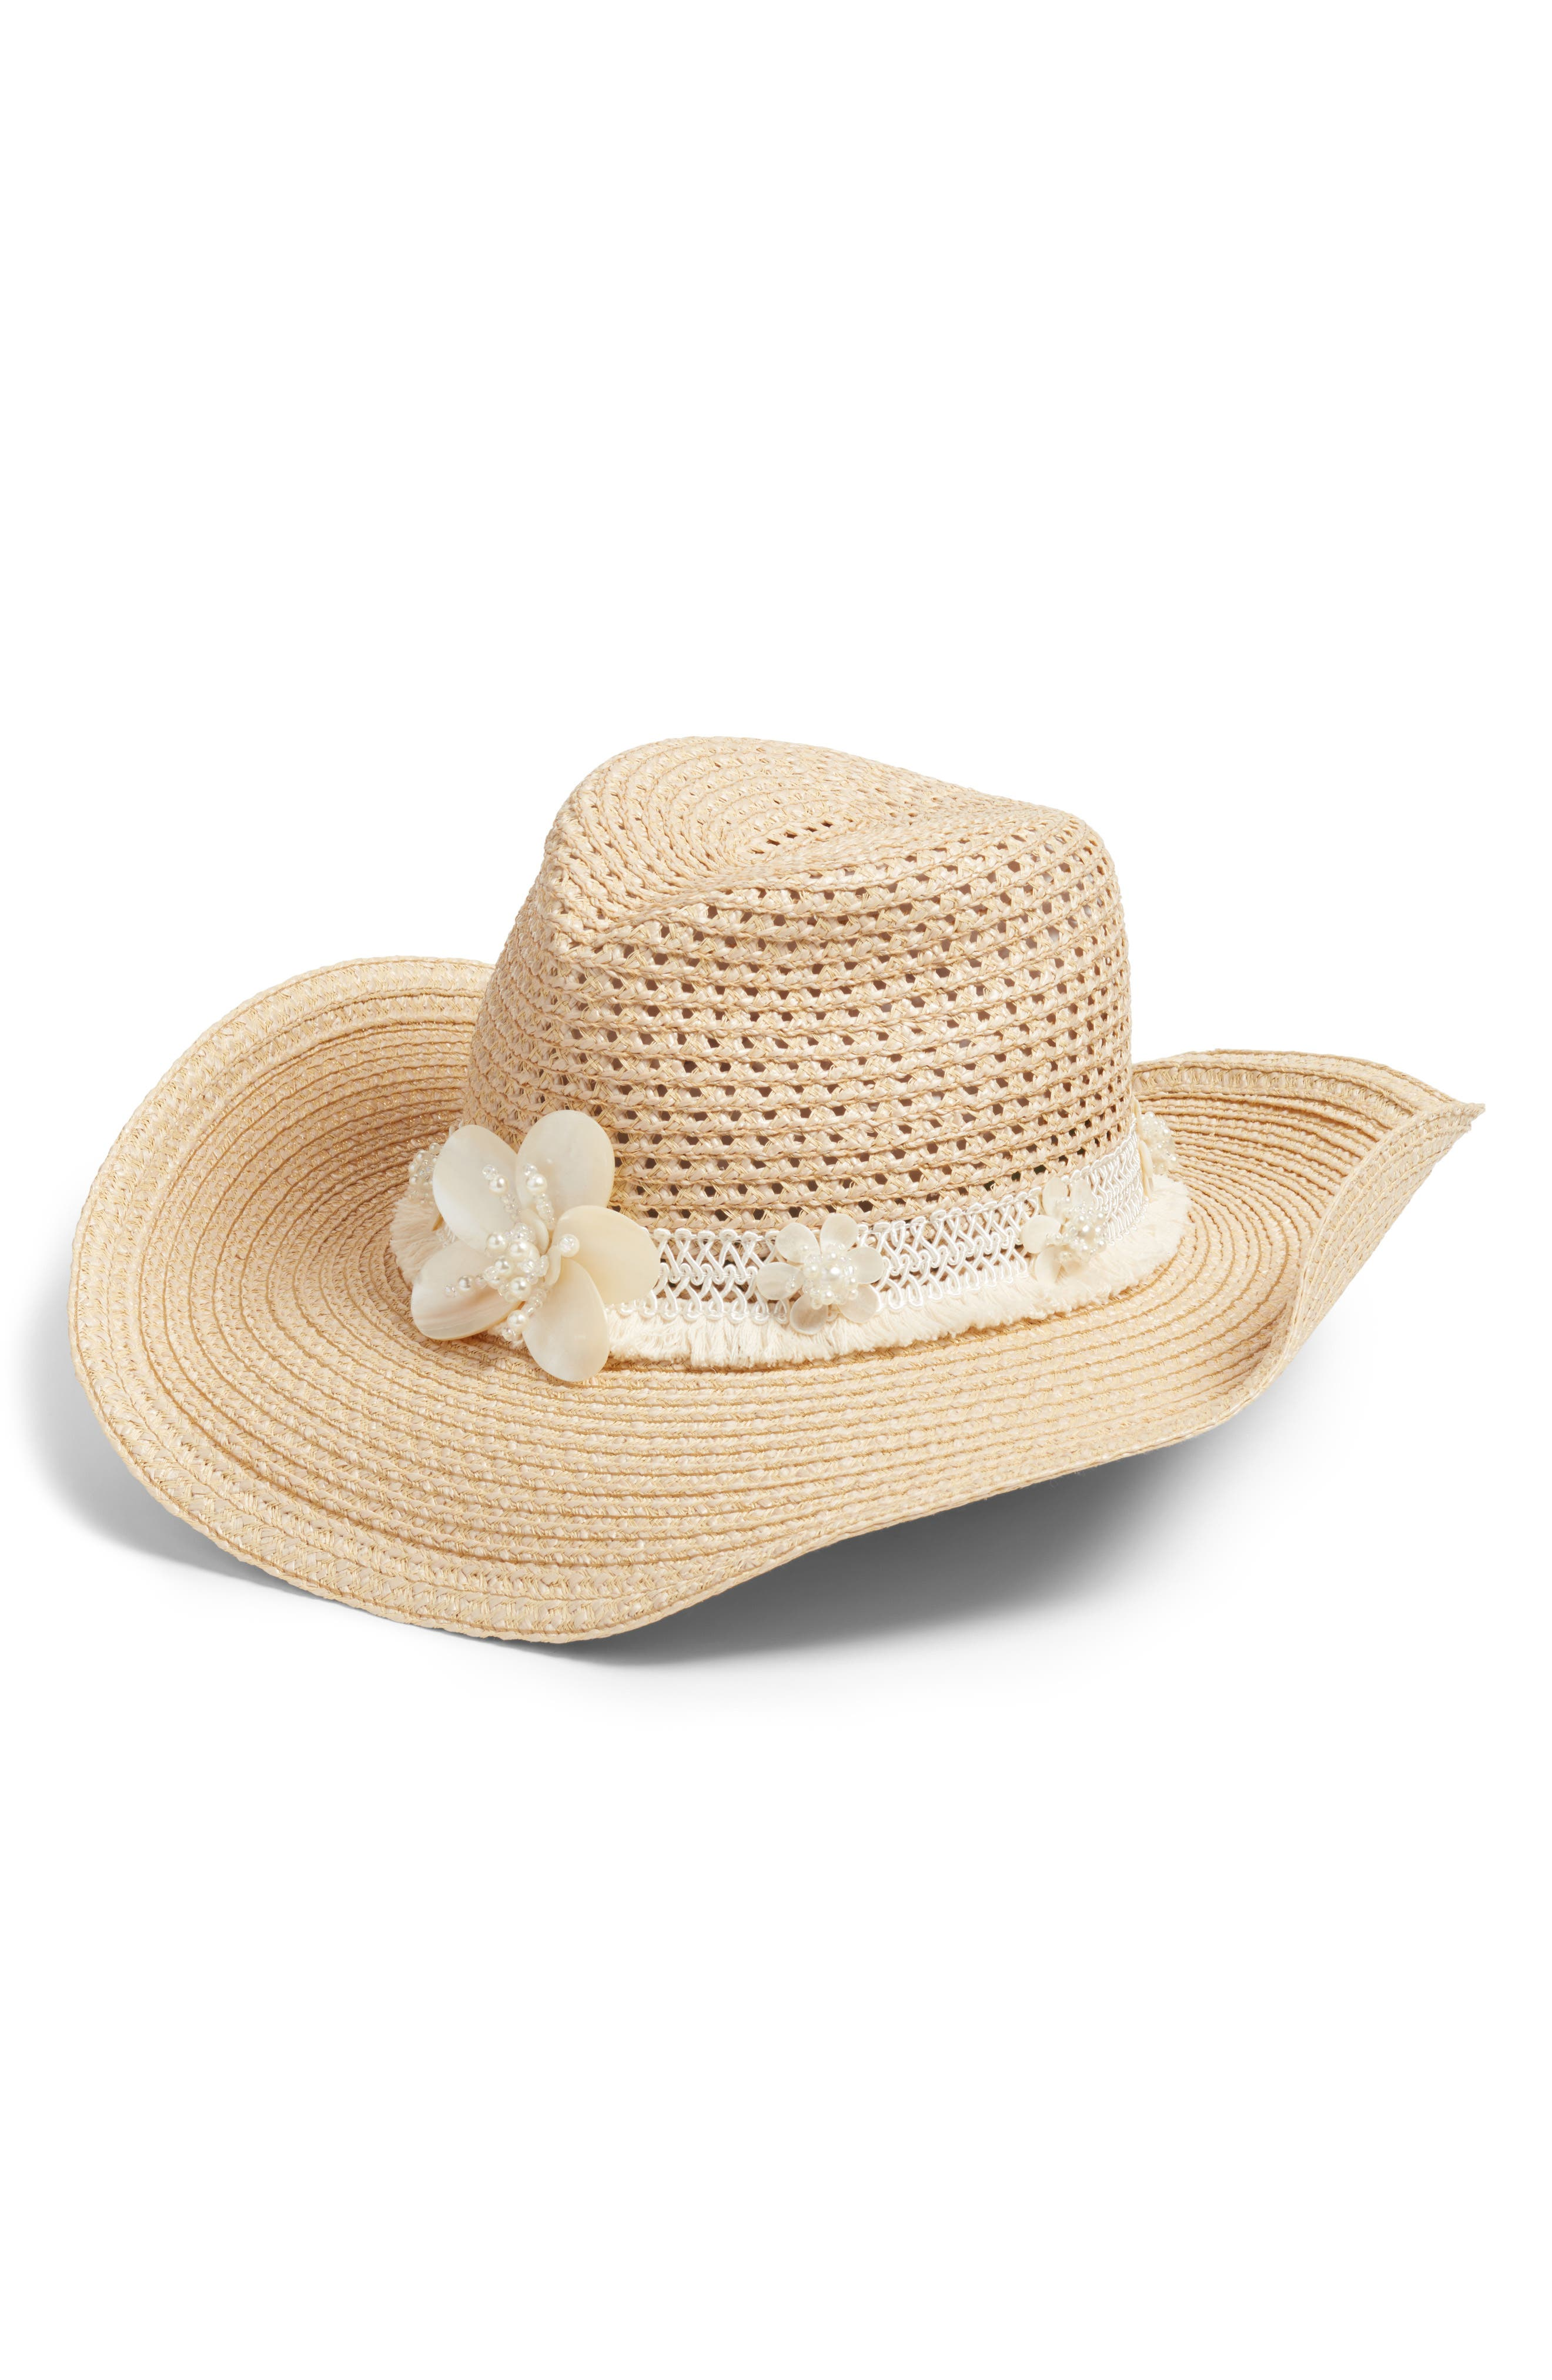 St. Tropez Squishee<sup>®</sup> Western Hat with Mother-of-Pearl Trim,                             Main thumbnail 1, color,                             Flax/ White